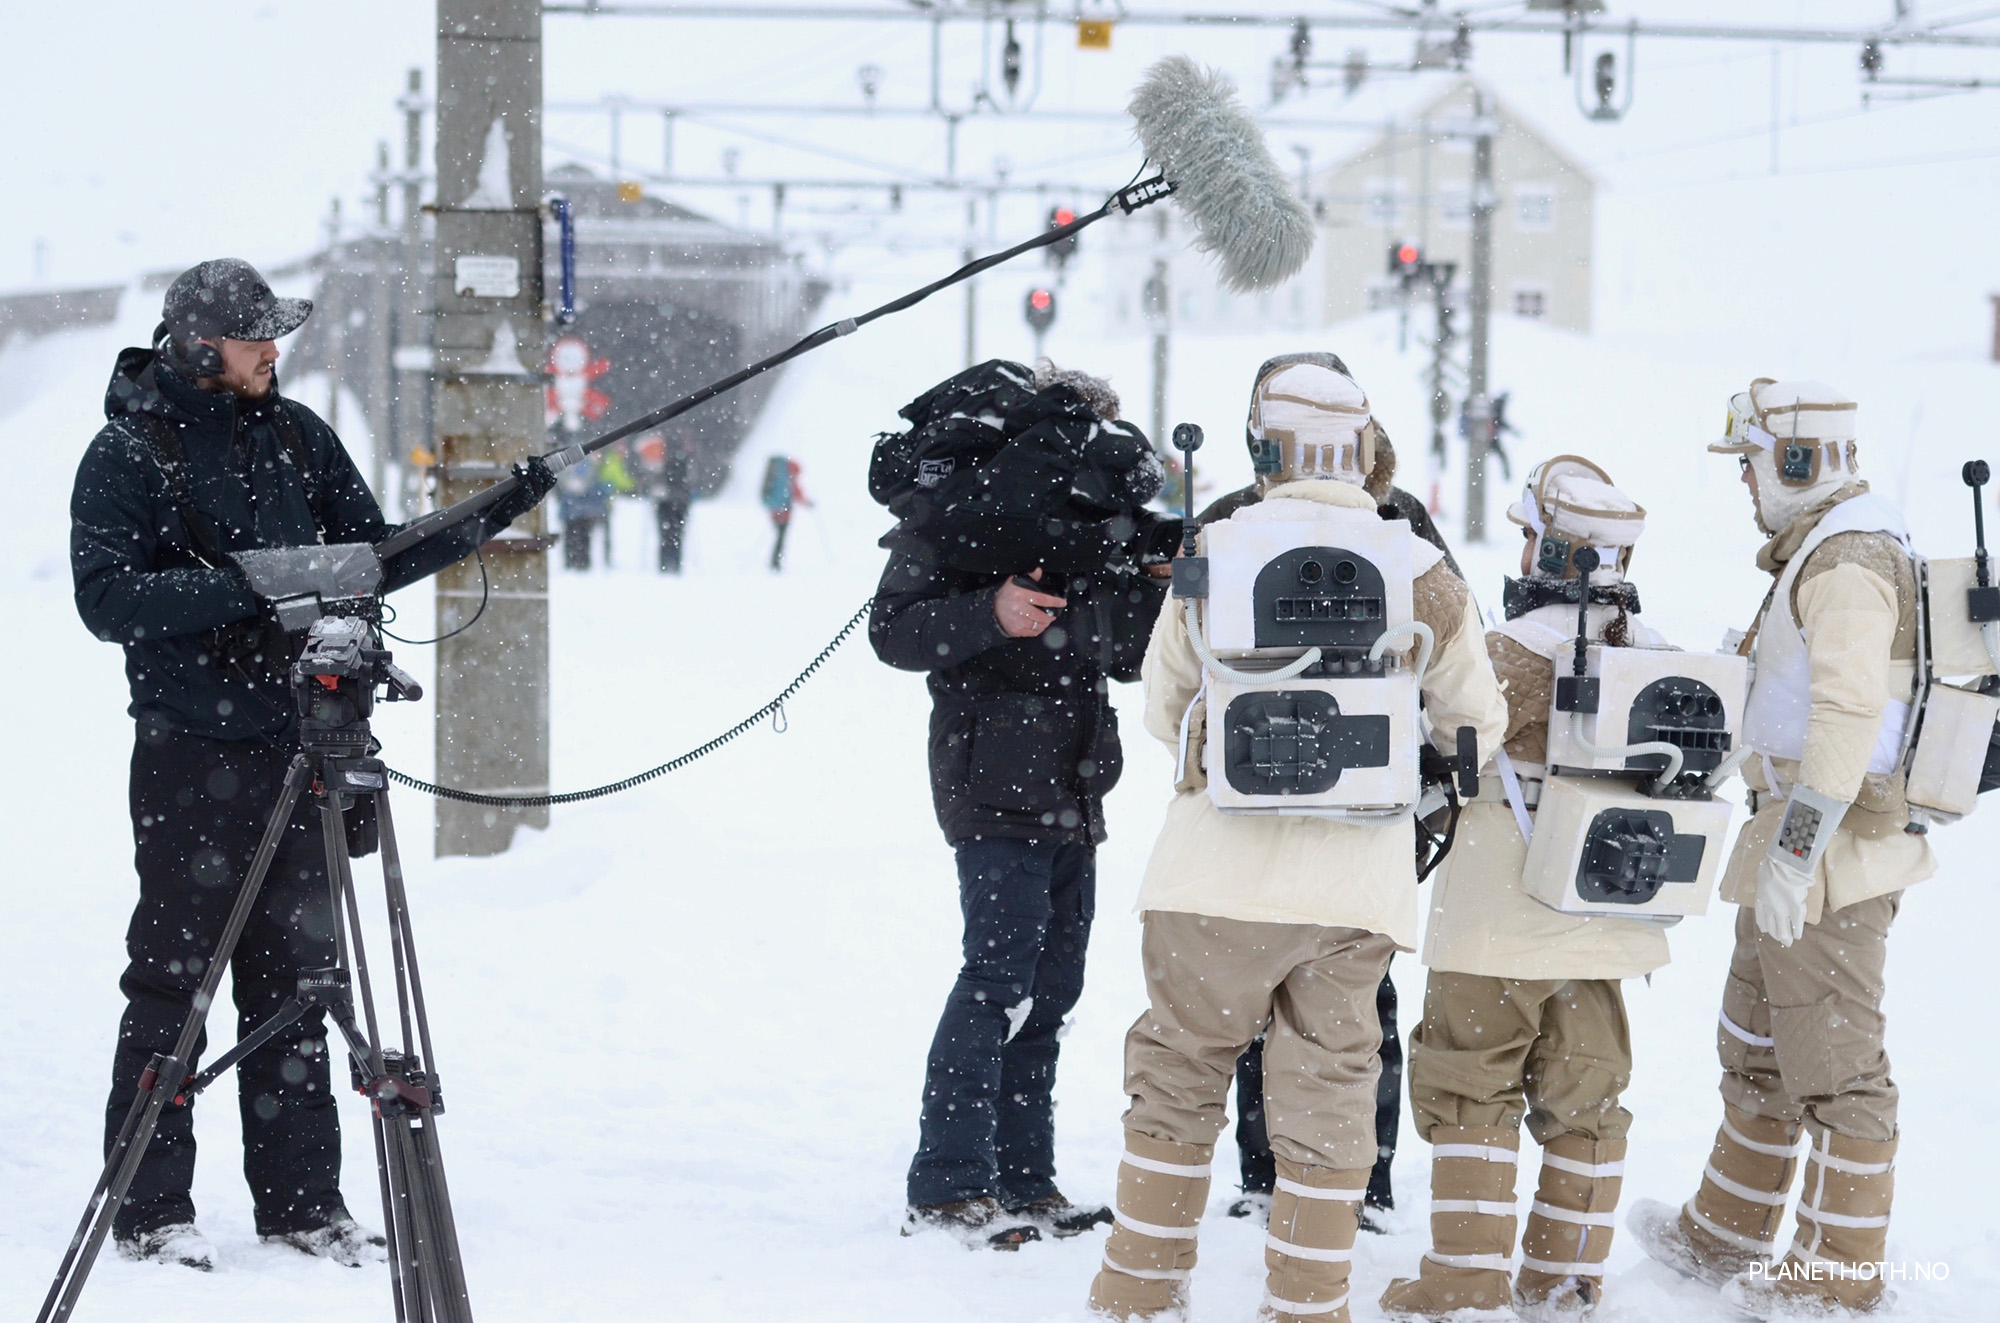 German television making a story from HOTH